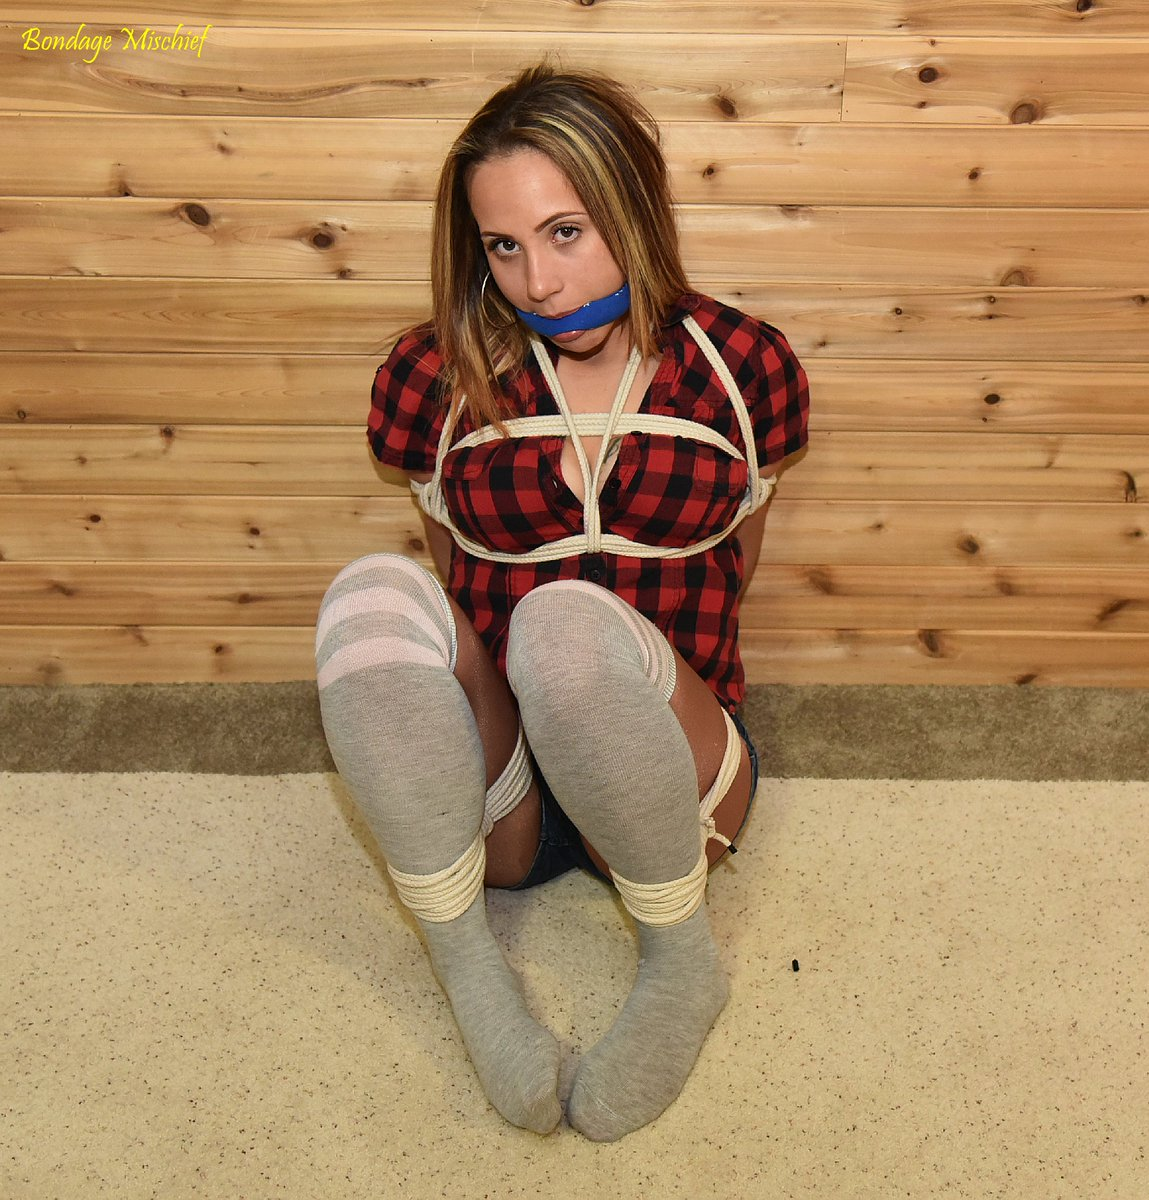 Jennifer spending her Sunday lounging around the house with me today at  http:// bondagemischief.com  &nbsp;   #bondage #pantyhose #socks #gagged <br>http://pic.twitter.com/LXknaZEAZ1